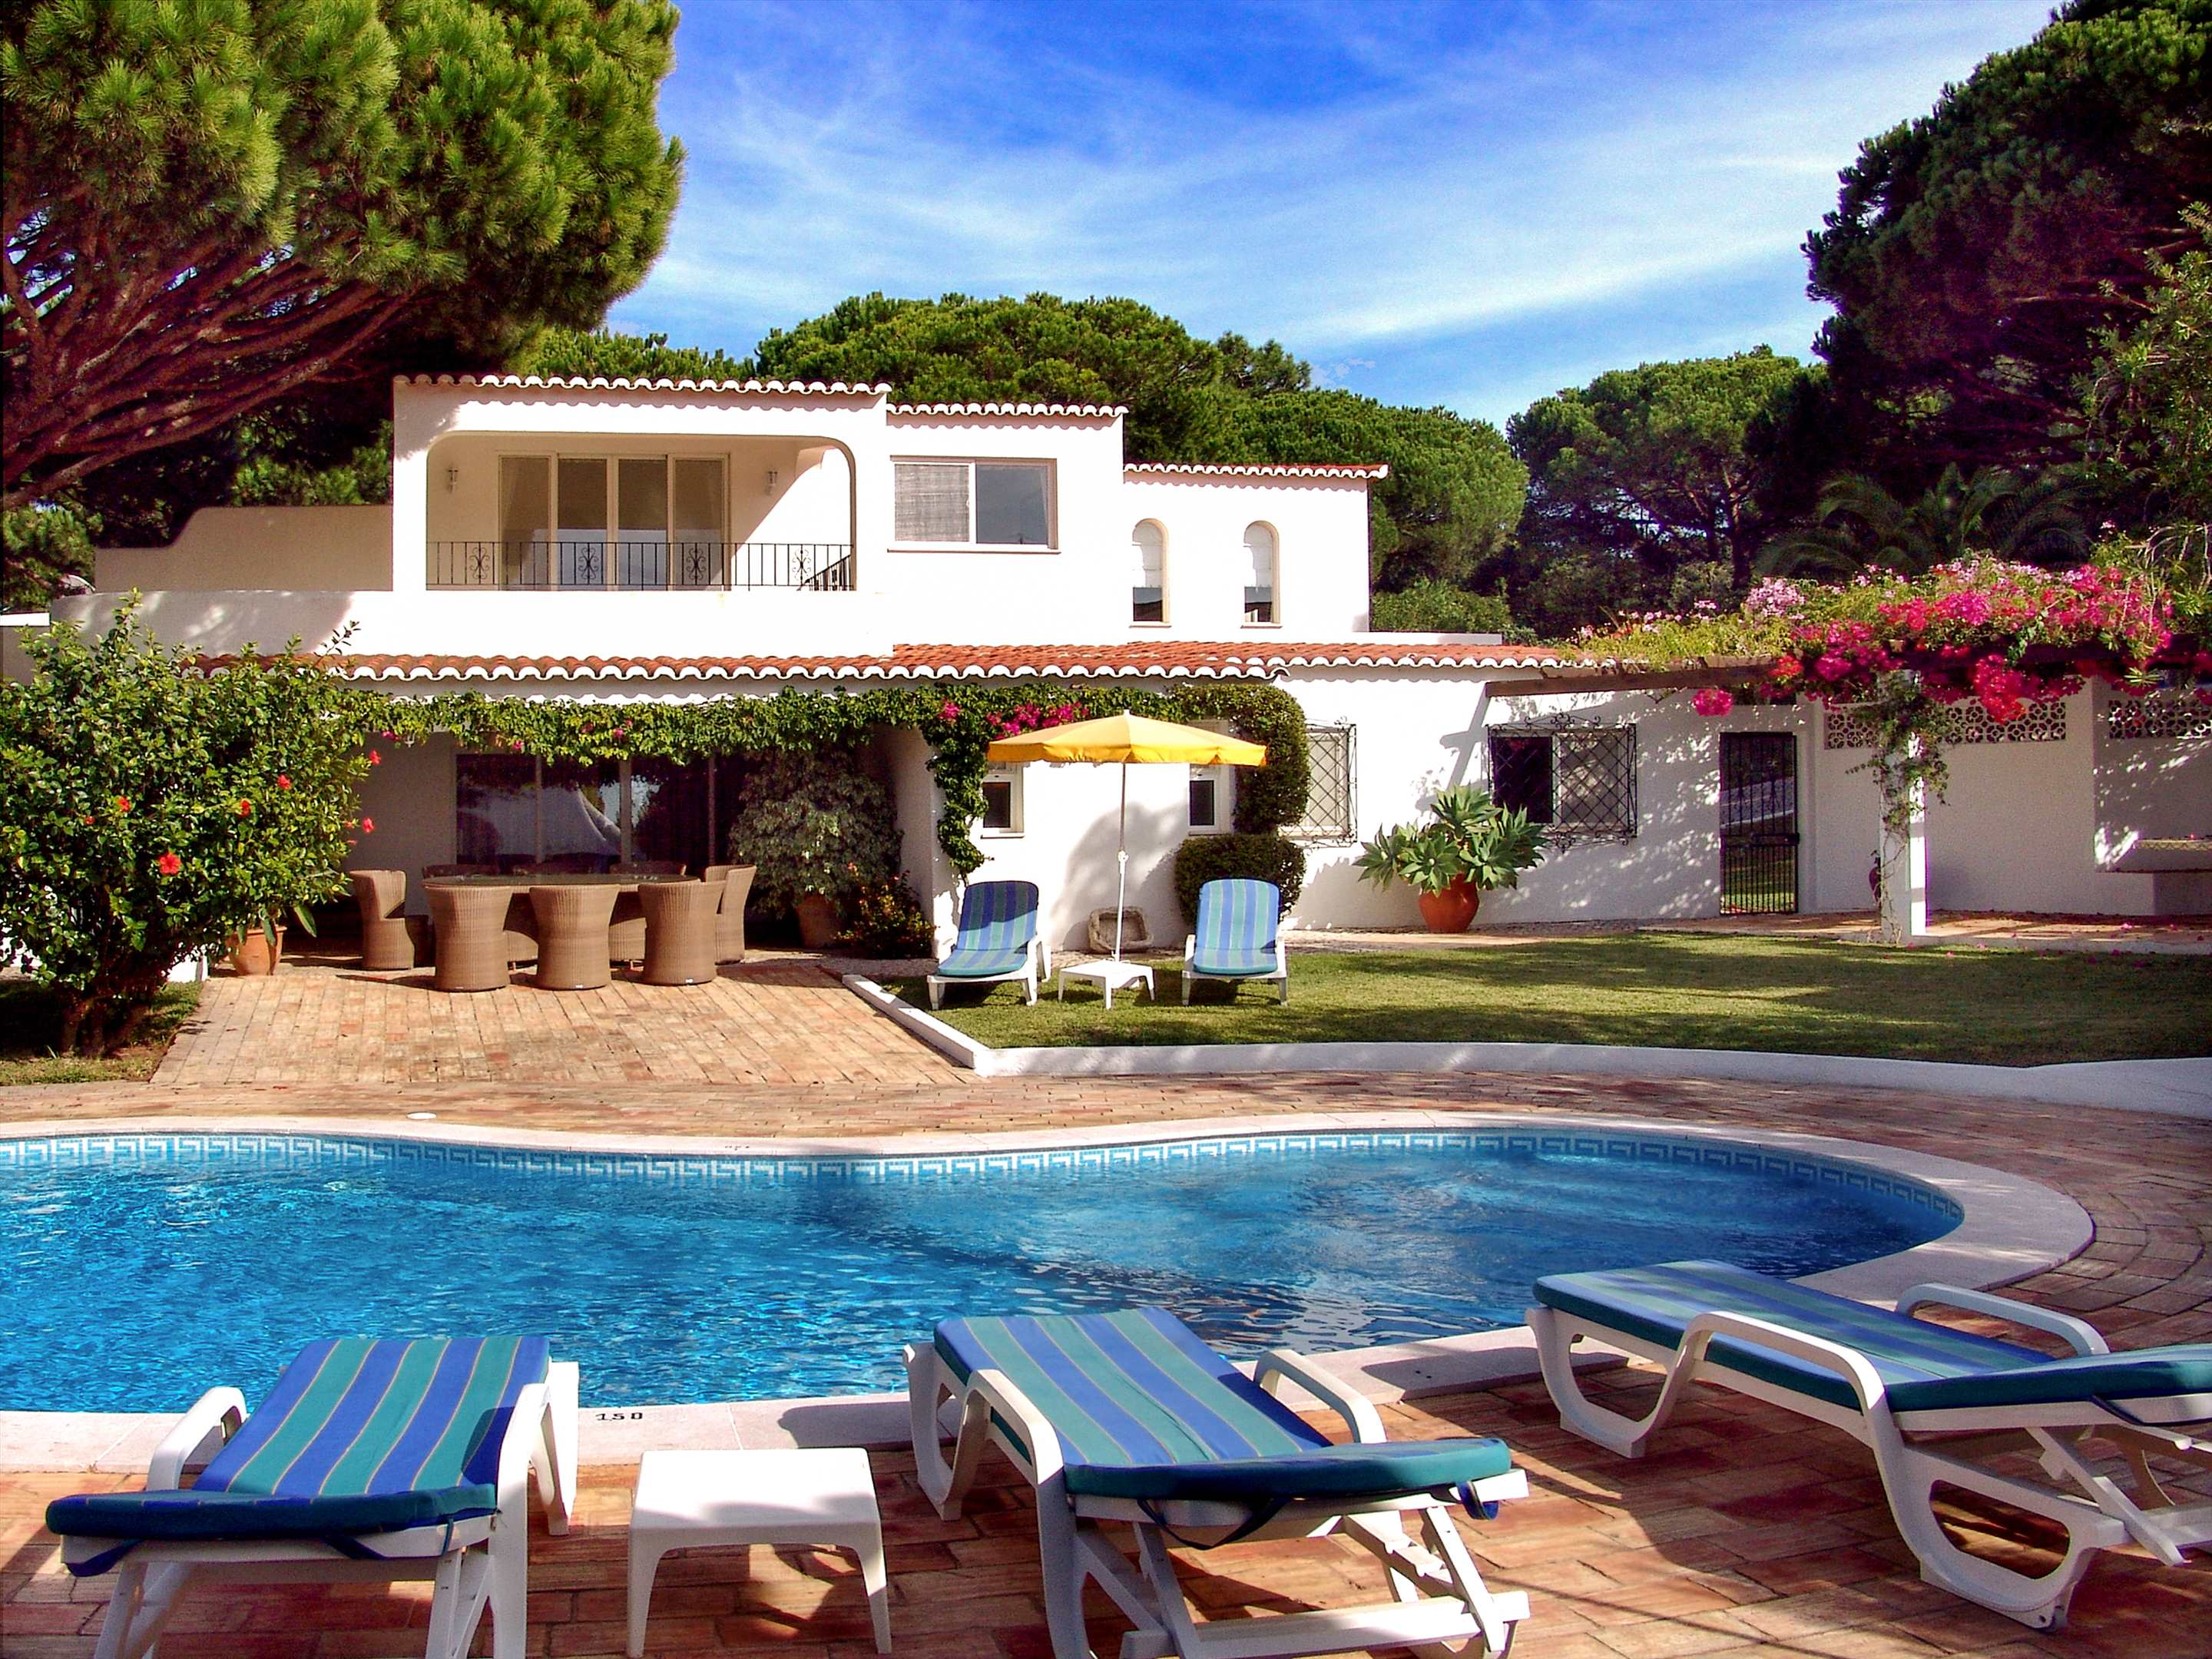 Villa Das Felicidades, 4 bedroom villa in Vale do Lobo, Algarve Photo #1